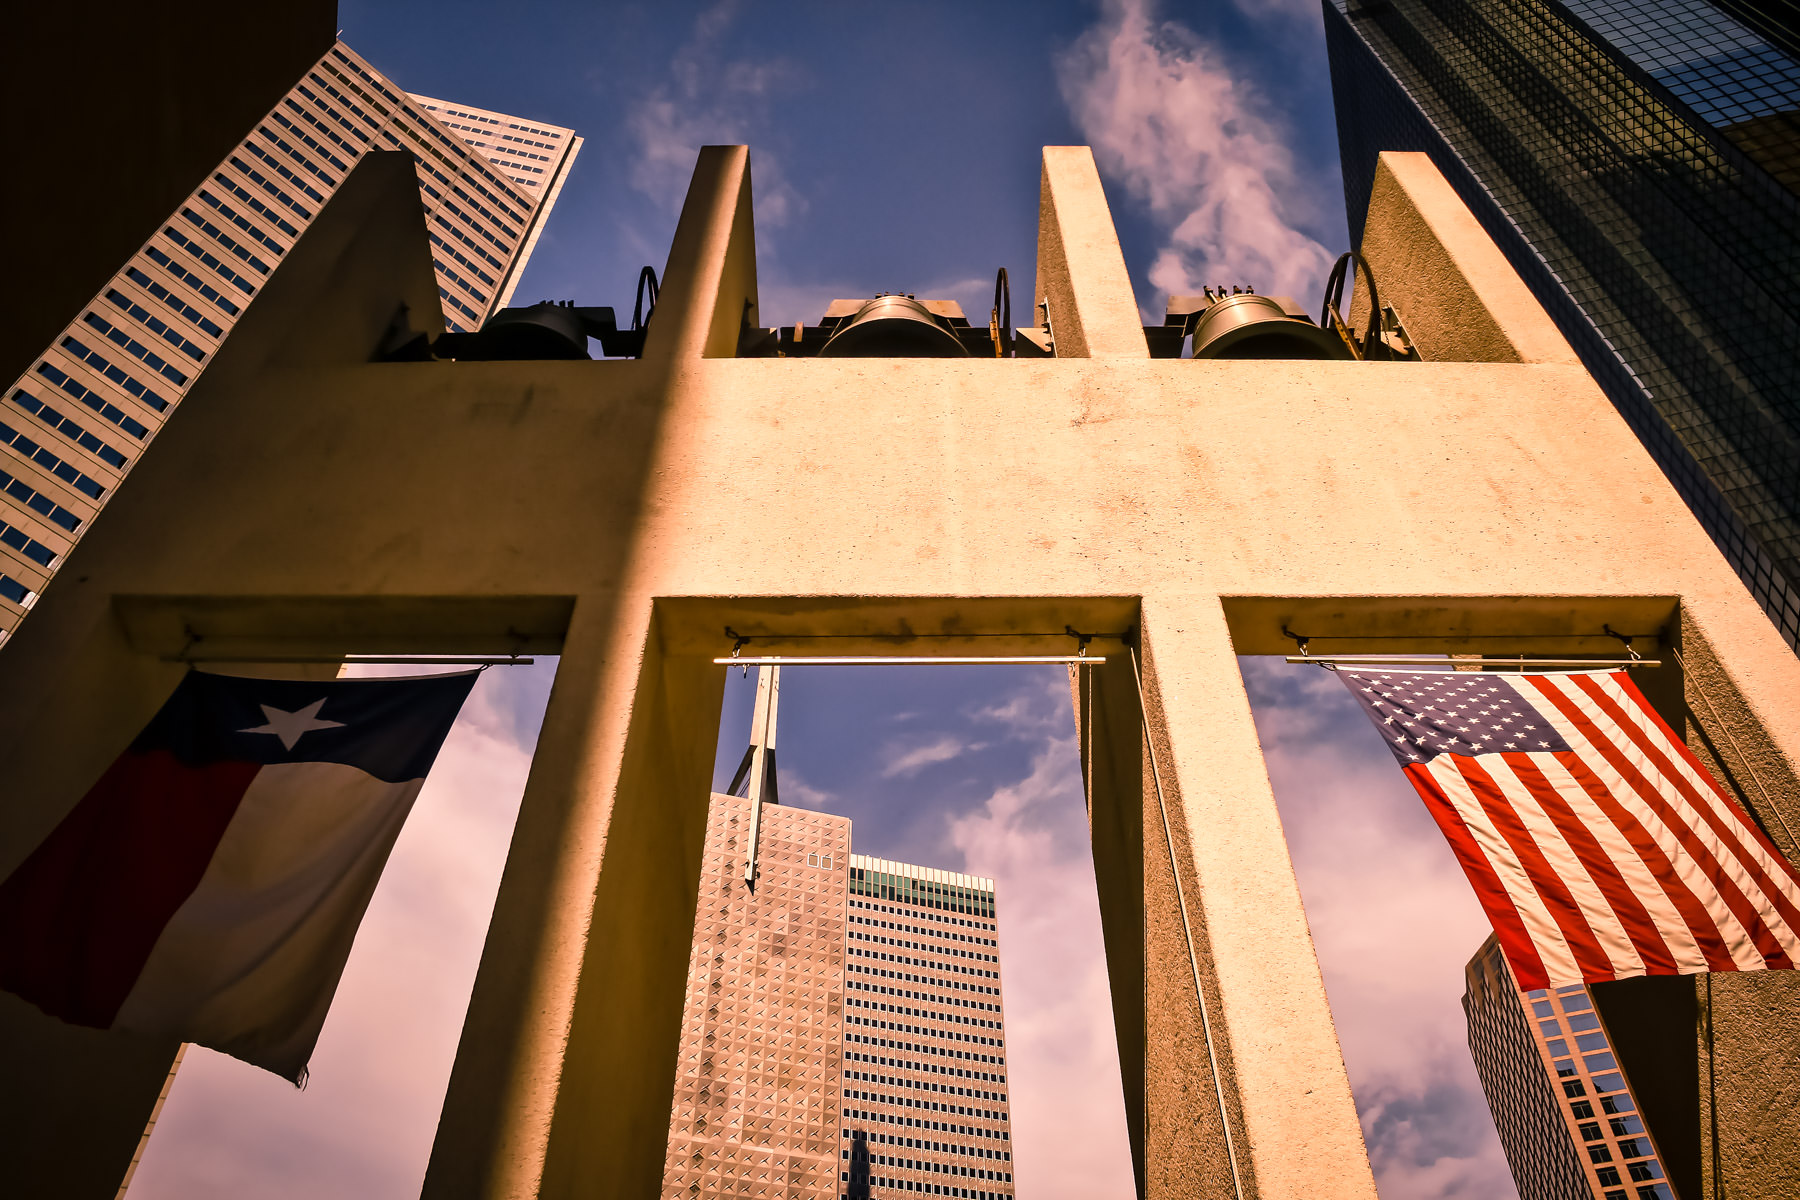 Texas and United States flags hang from a small carillon in Dallas' Thanks-Giving Square.